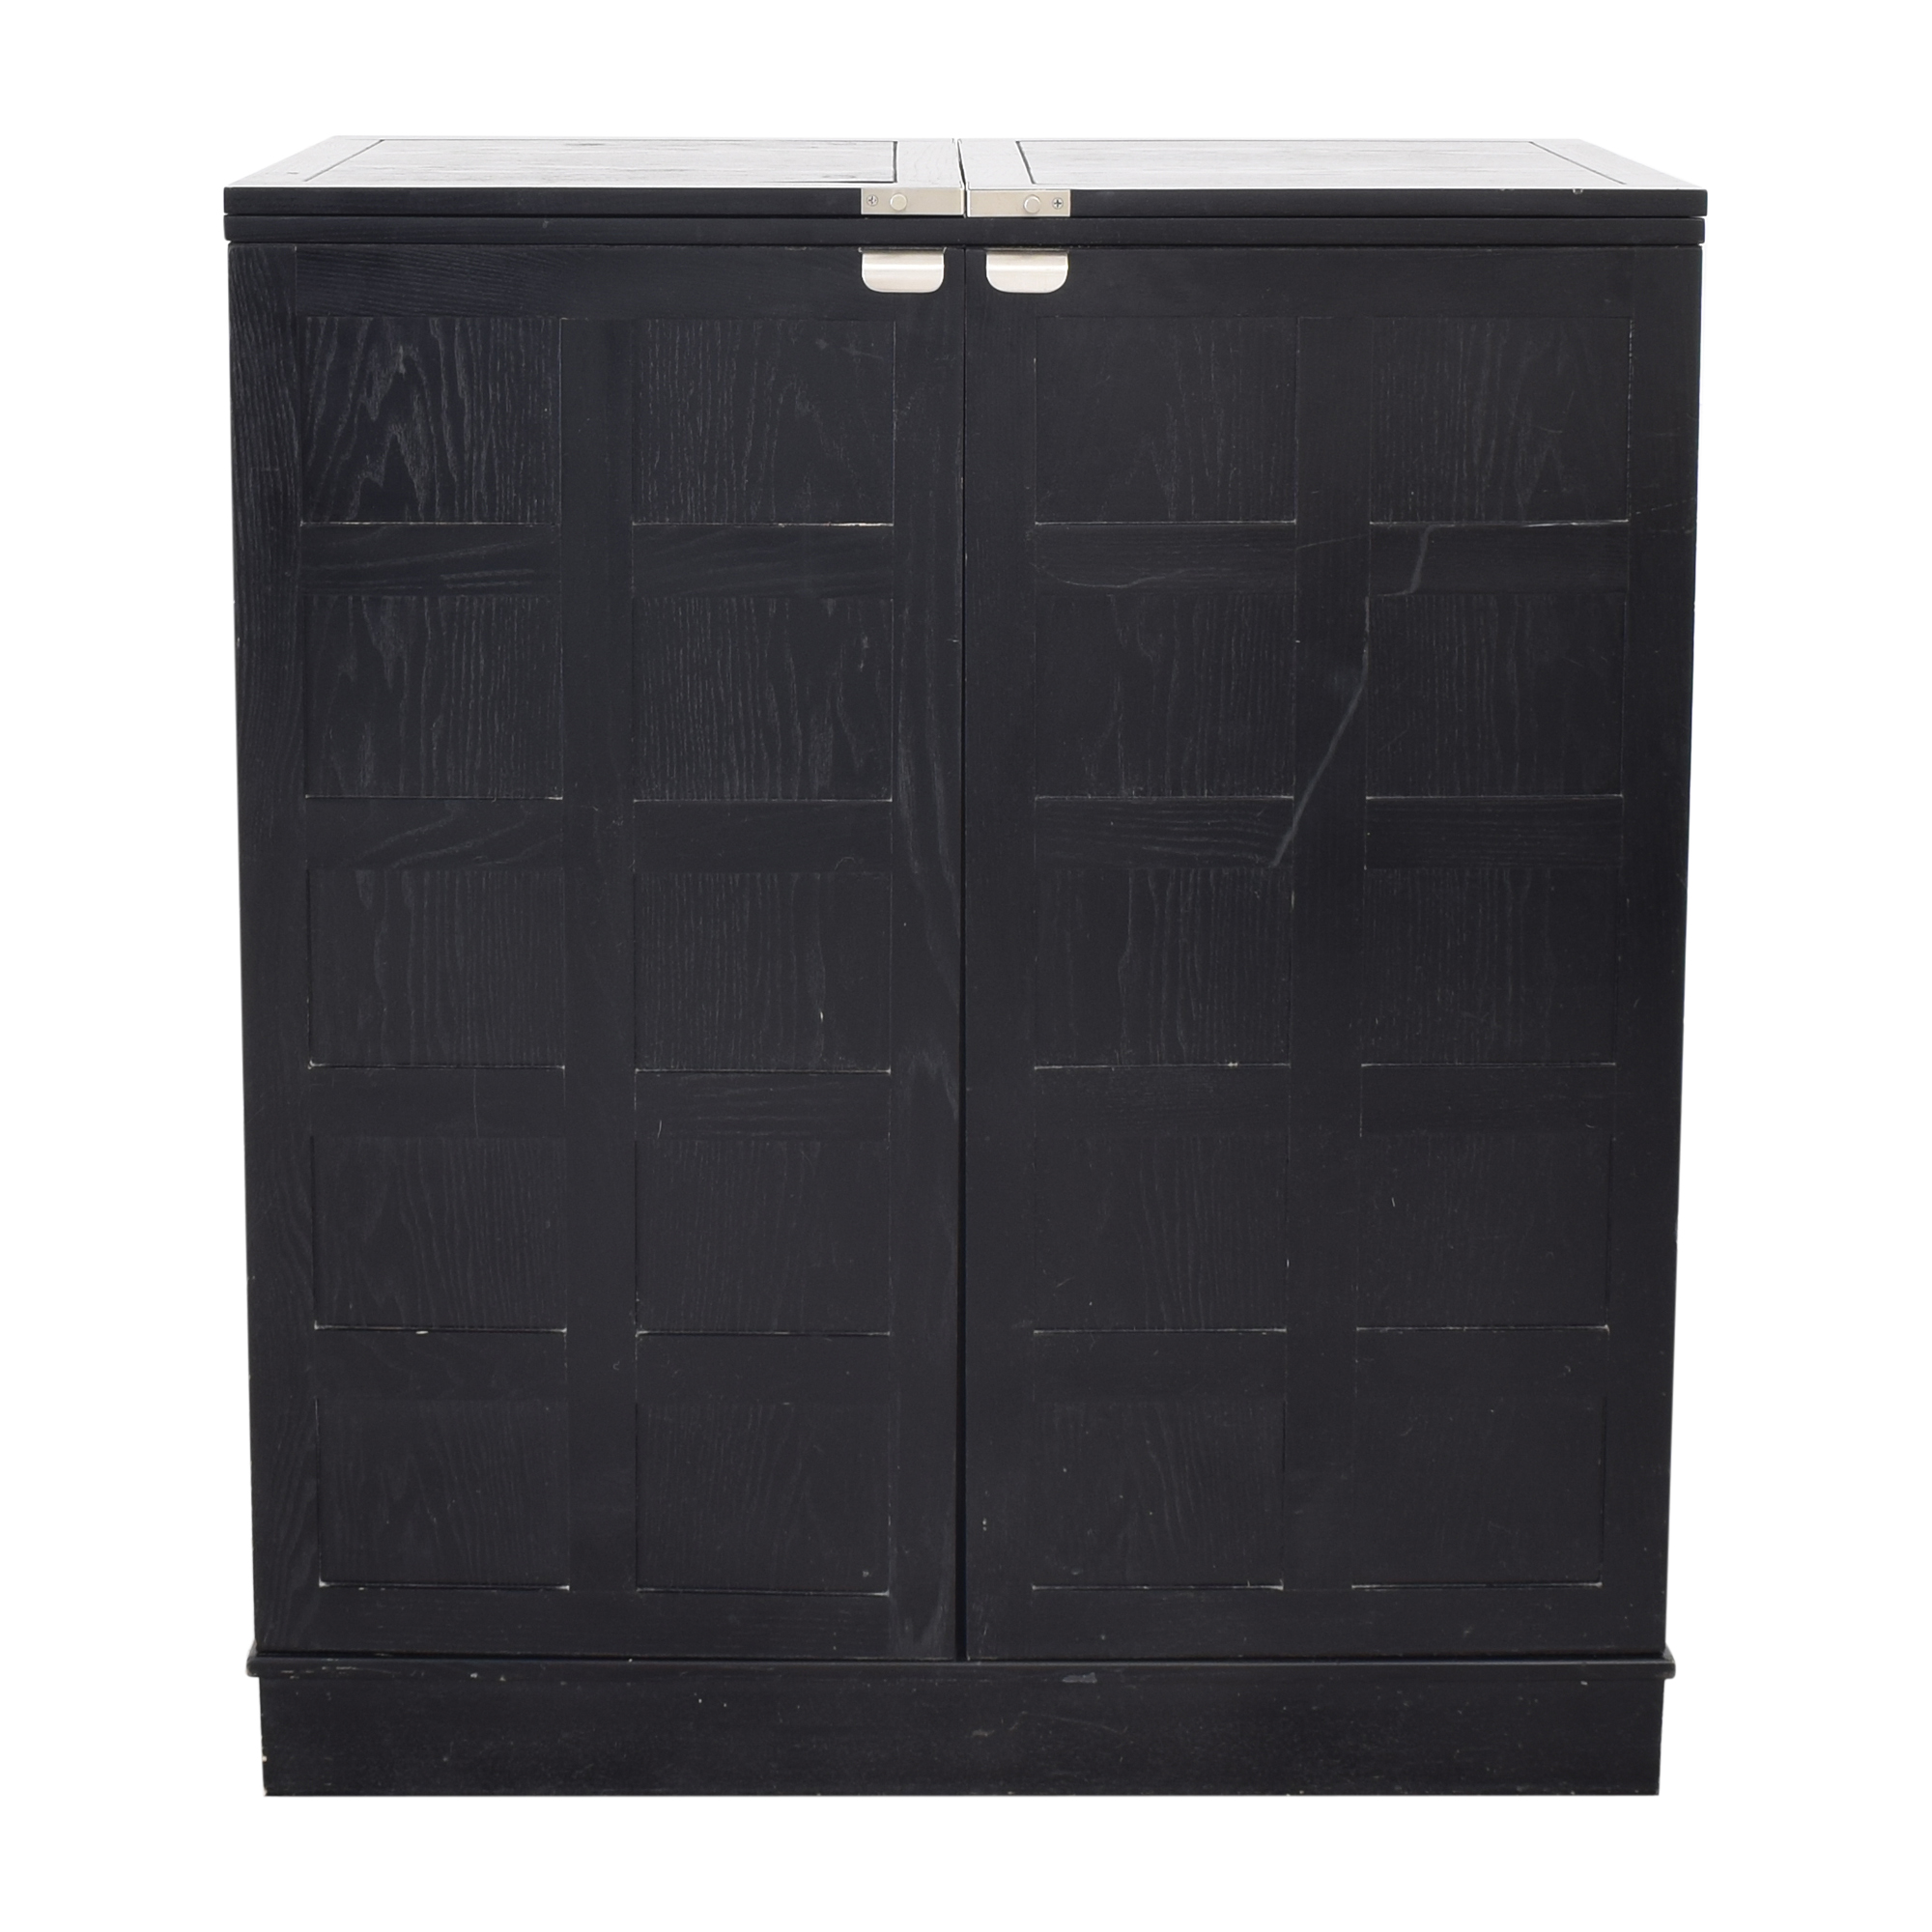 Crate & Barrel Crate & Barrel Steamer Bar Cabinet black